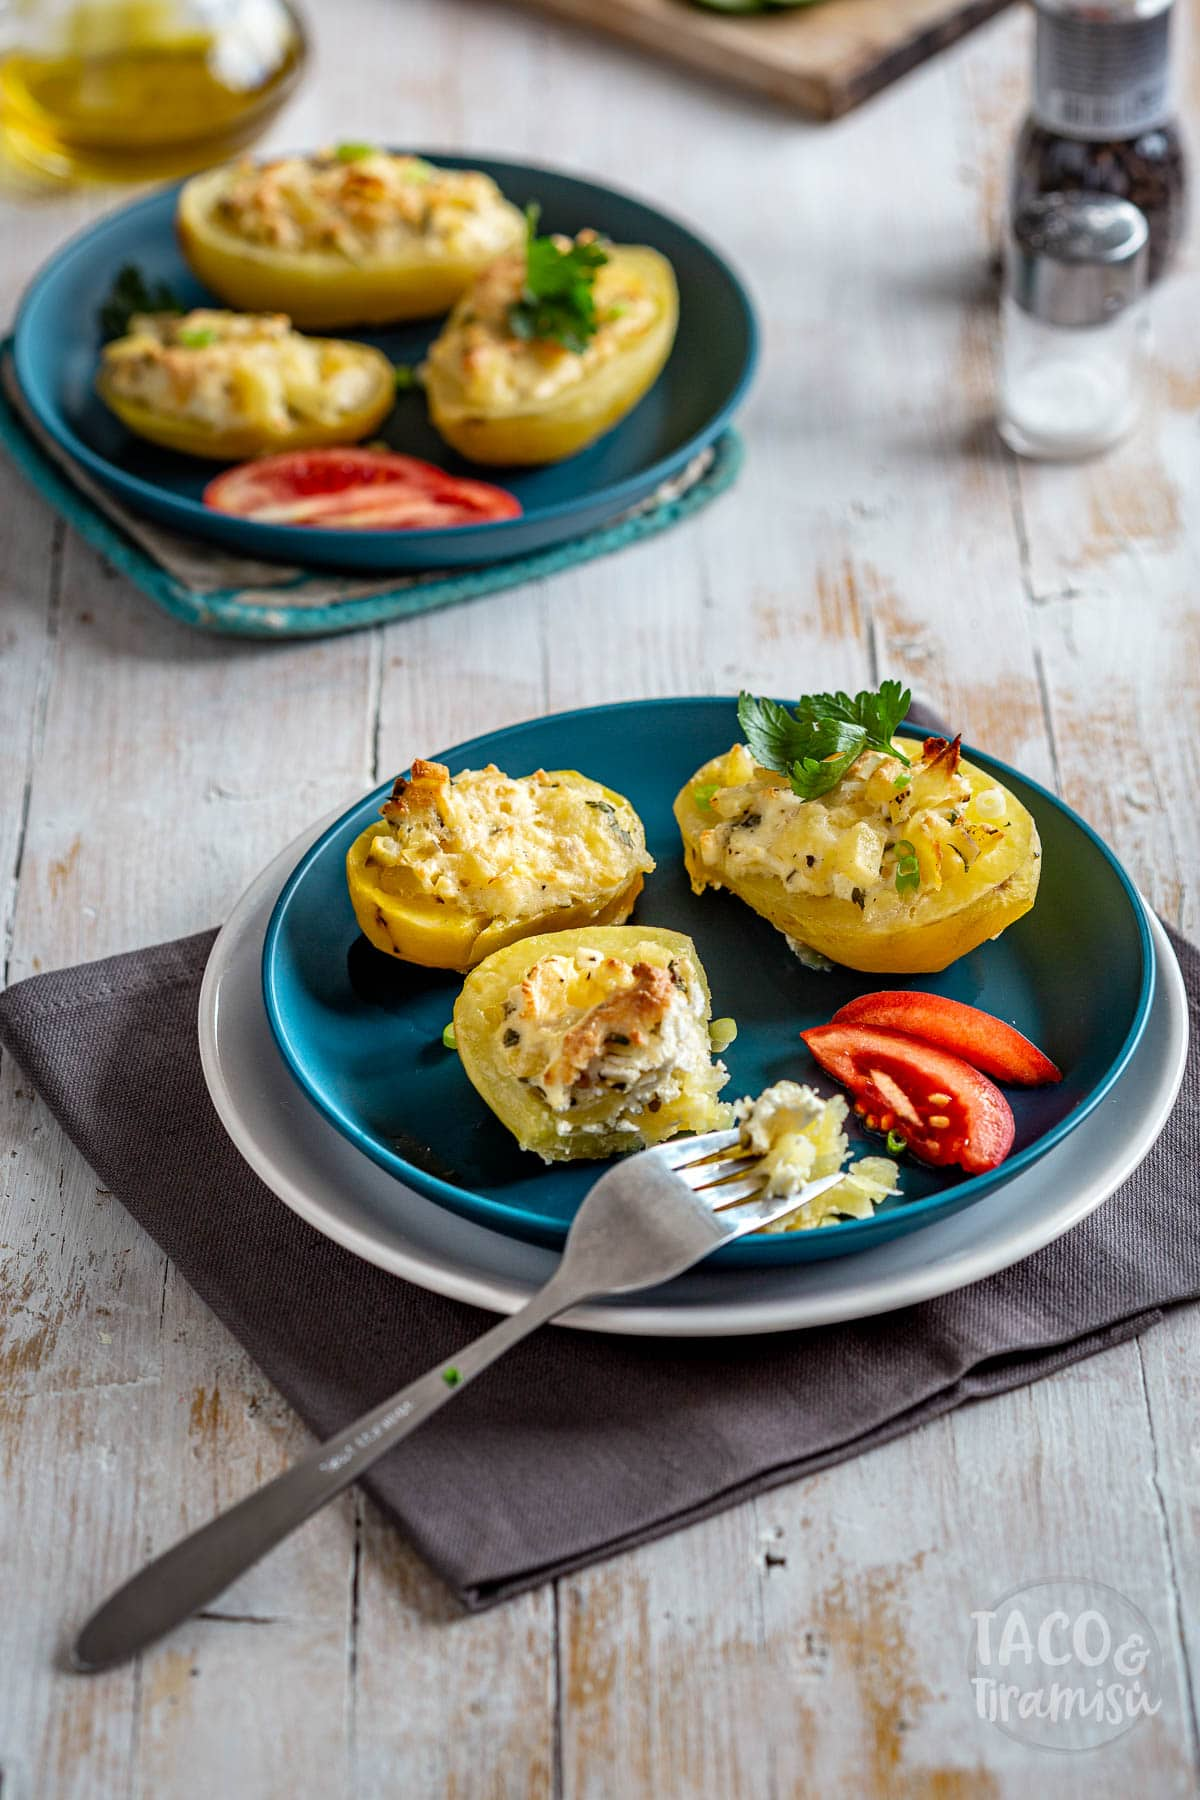 cheese stuffed potatoes served in two plates with tomatoes and a fork taking out of one potato